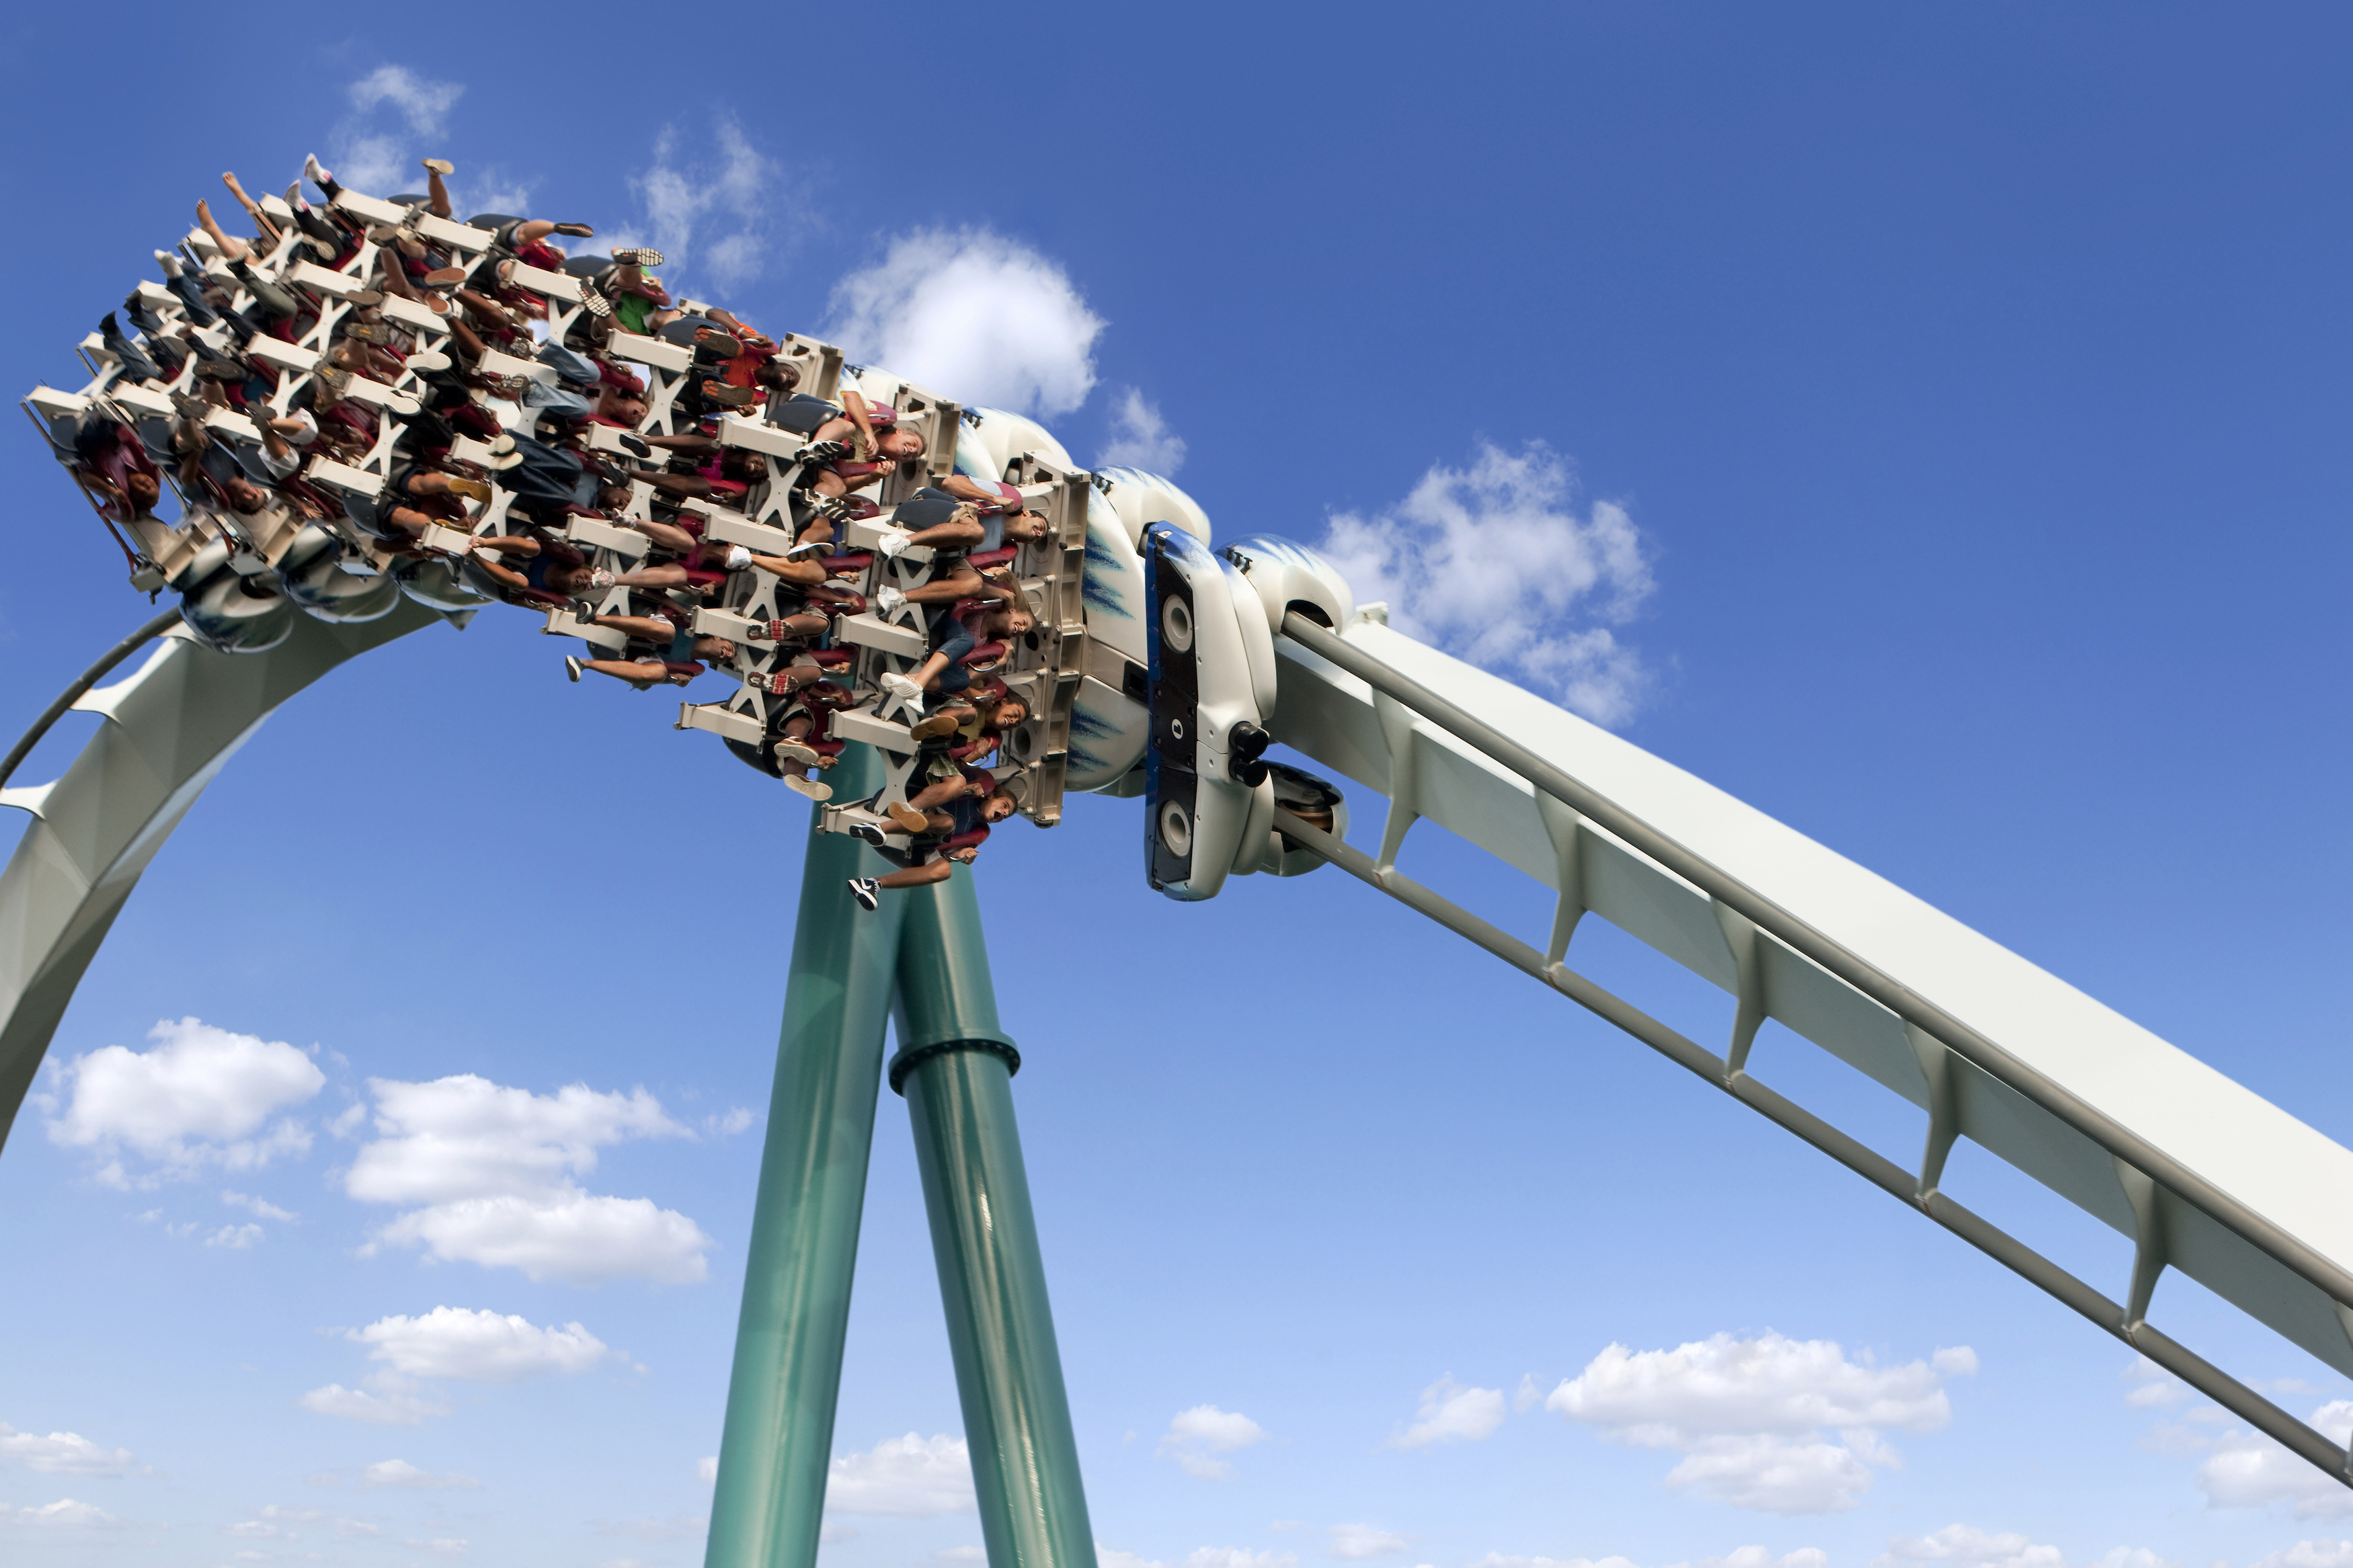 Dc Take A Vacation Busch Gardens Has A Deal For You Fairfax Family Fun